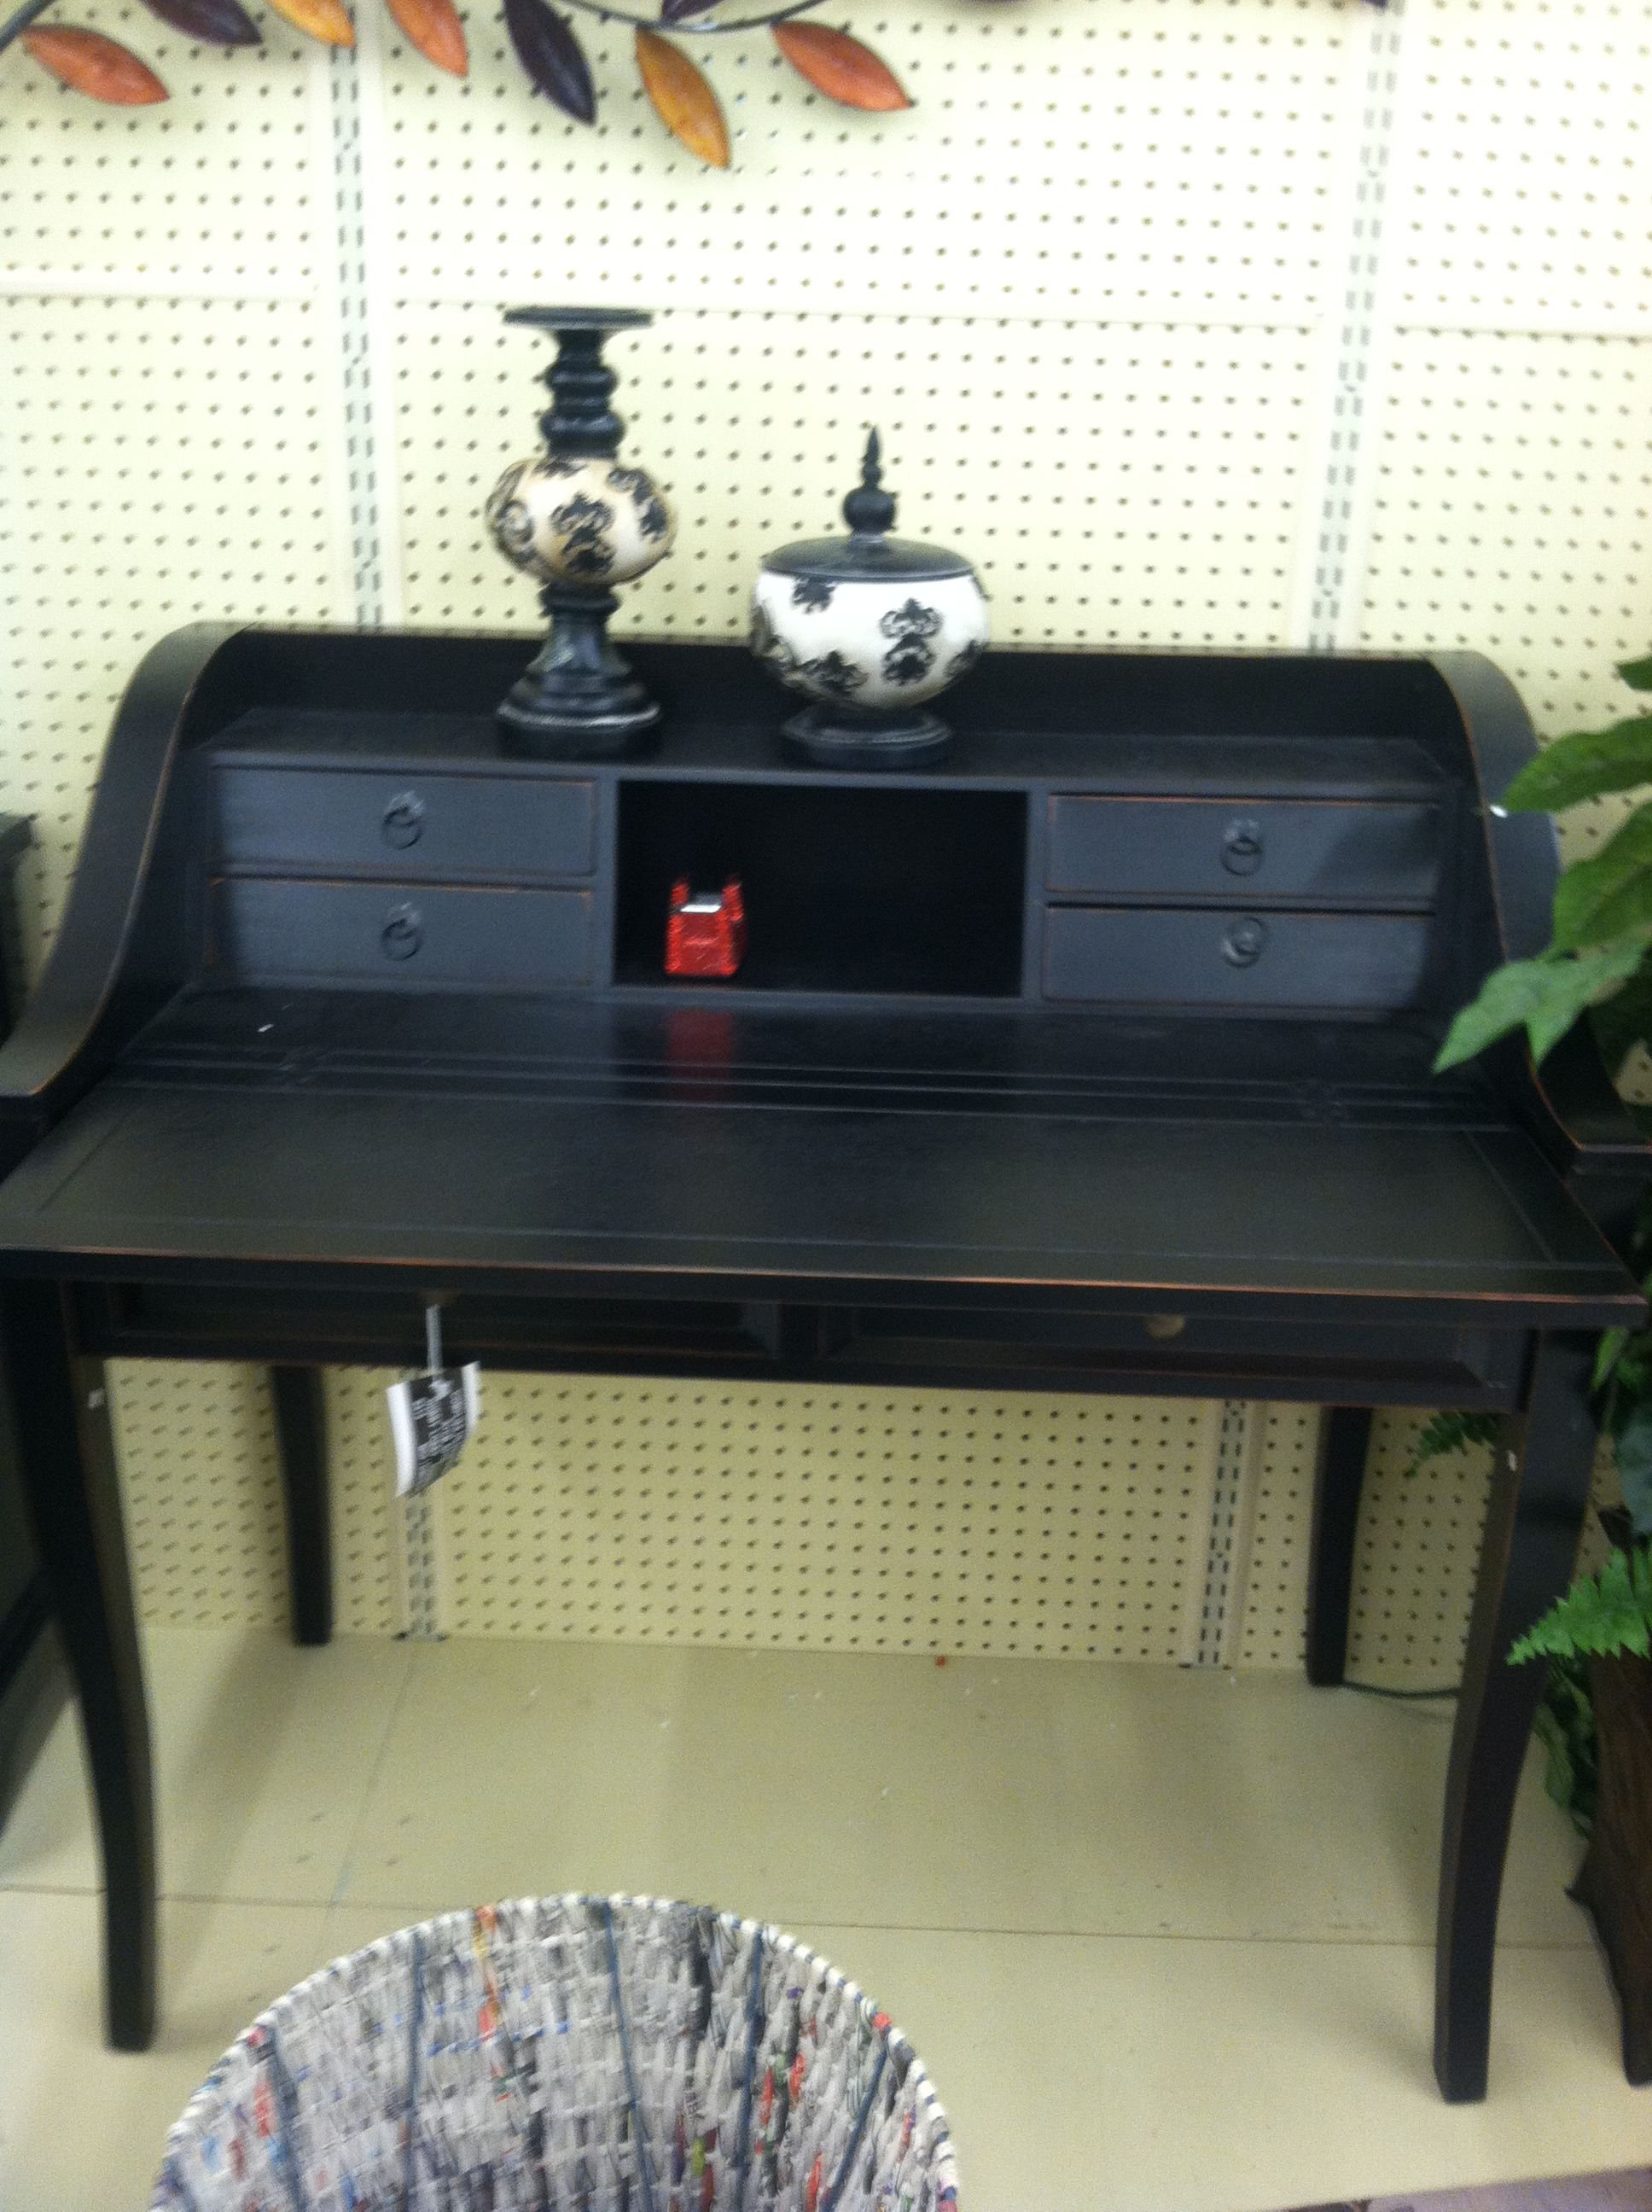 Home Decorators Collection Madeline Desk Sold At Hobby Lobby Original Price 329 99 On Sale